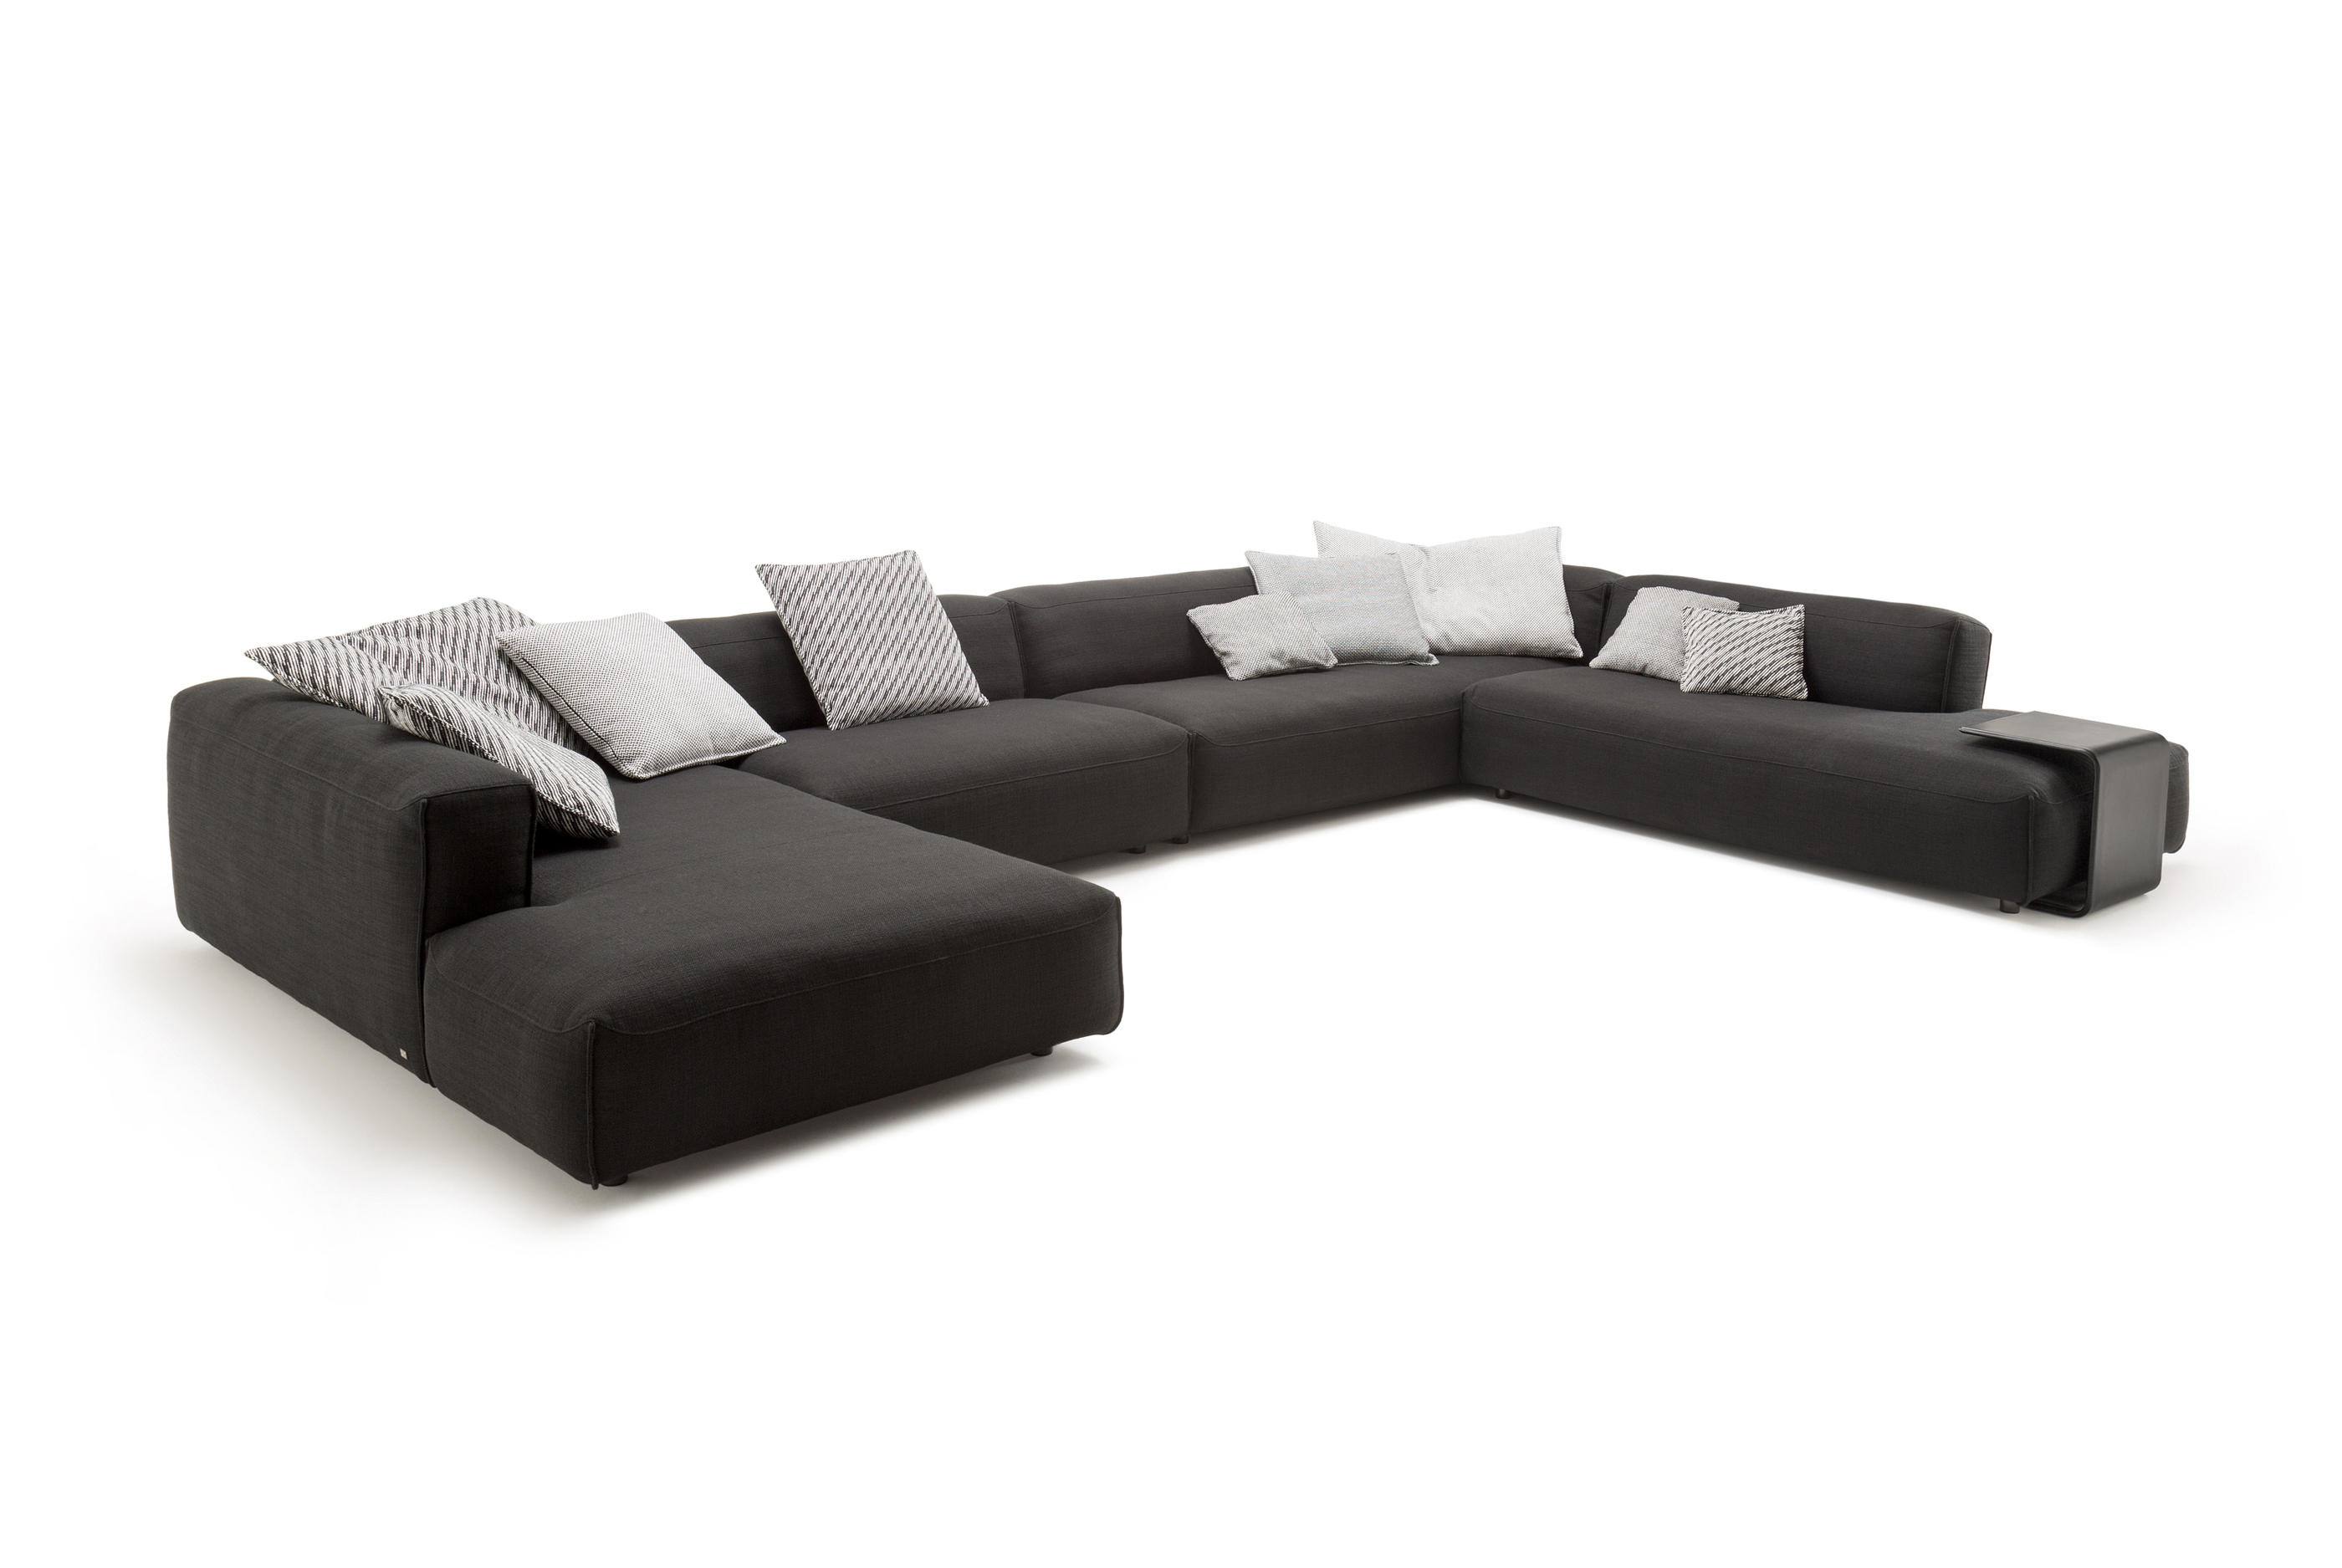 rolf benz 552 mio modular seating systems from rolf benz. Black Bedroom Furniture Sets. Home Design Ideas